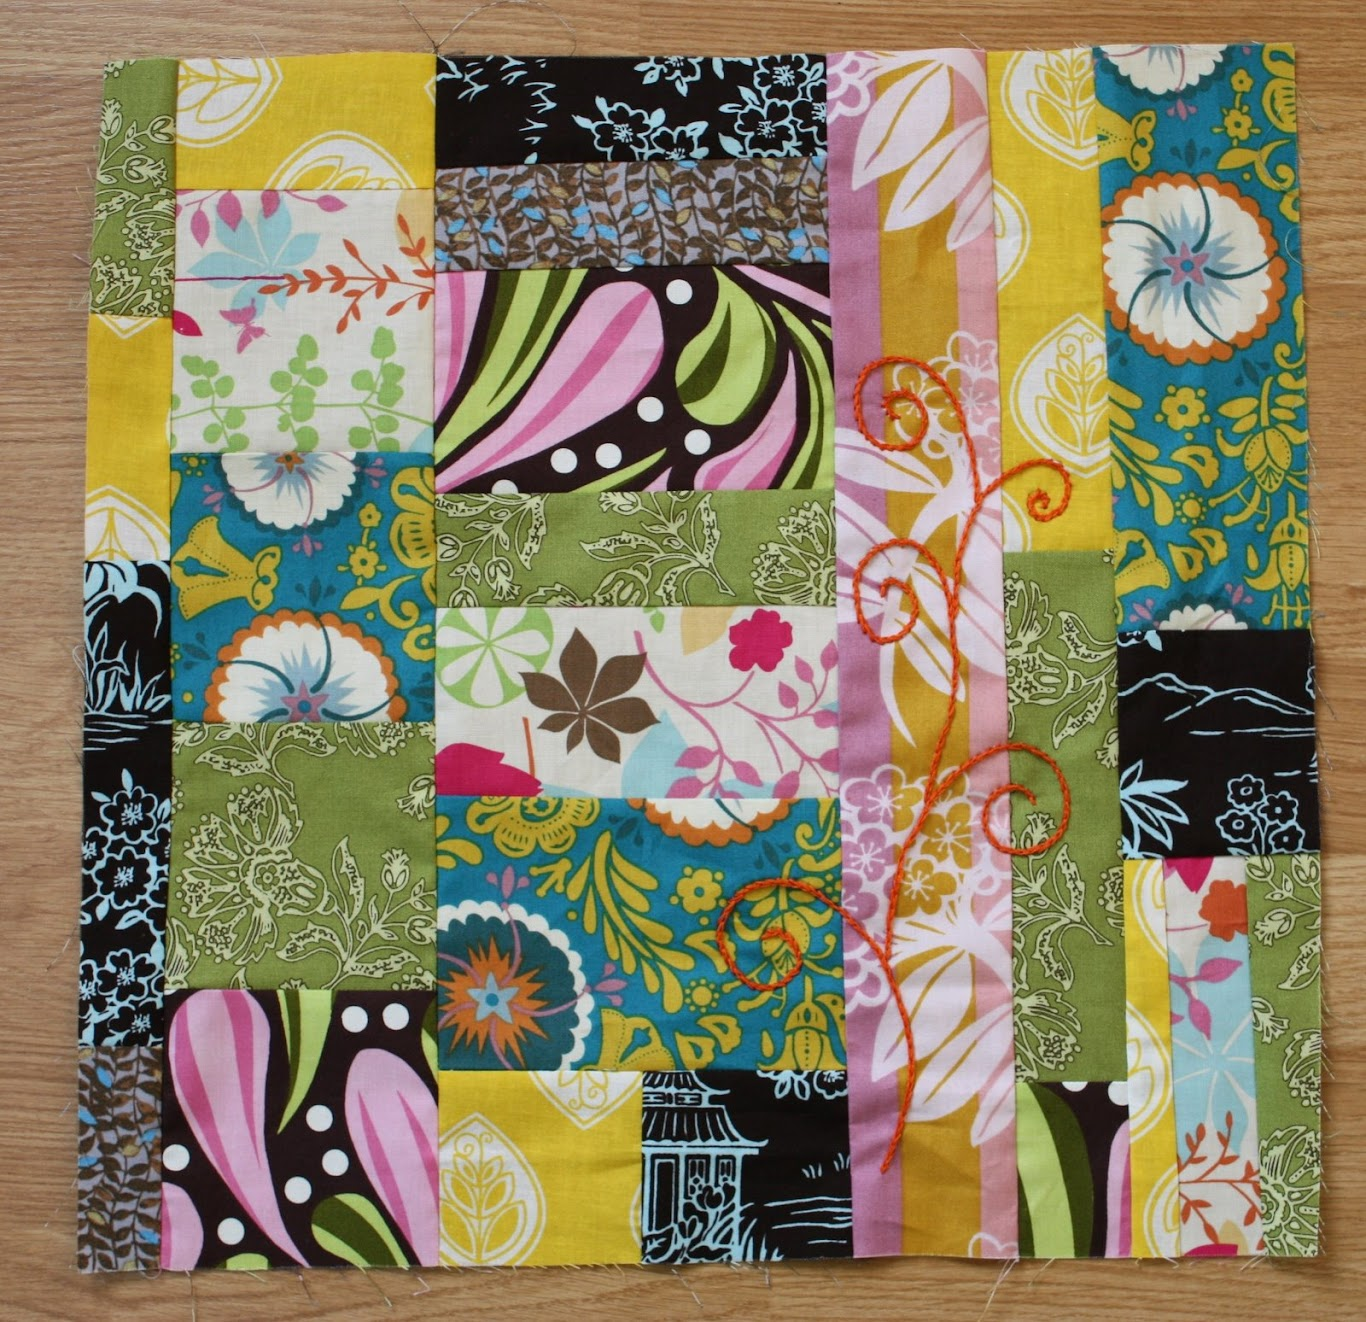 March's quilt block